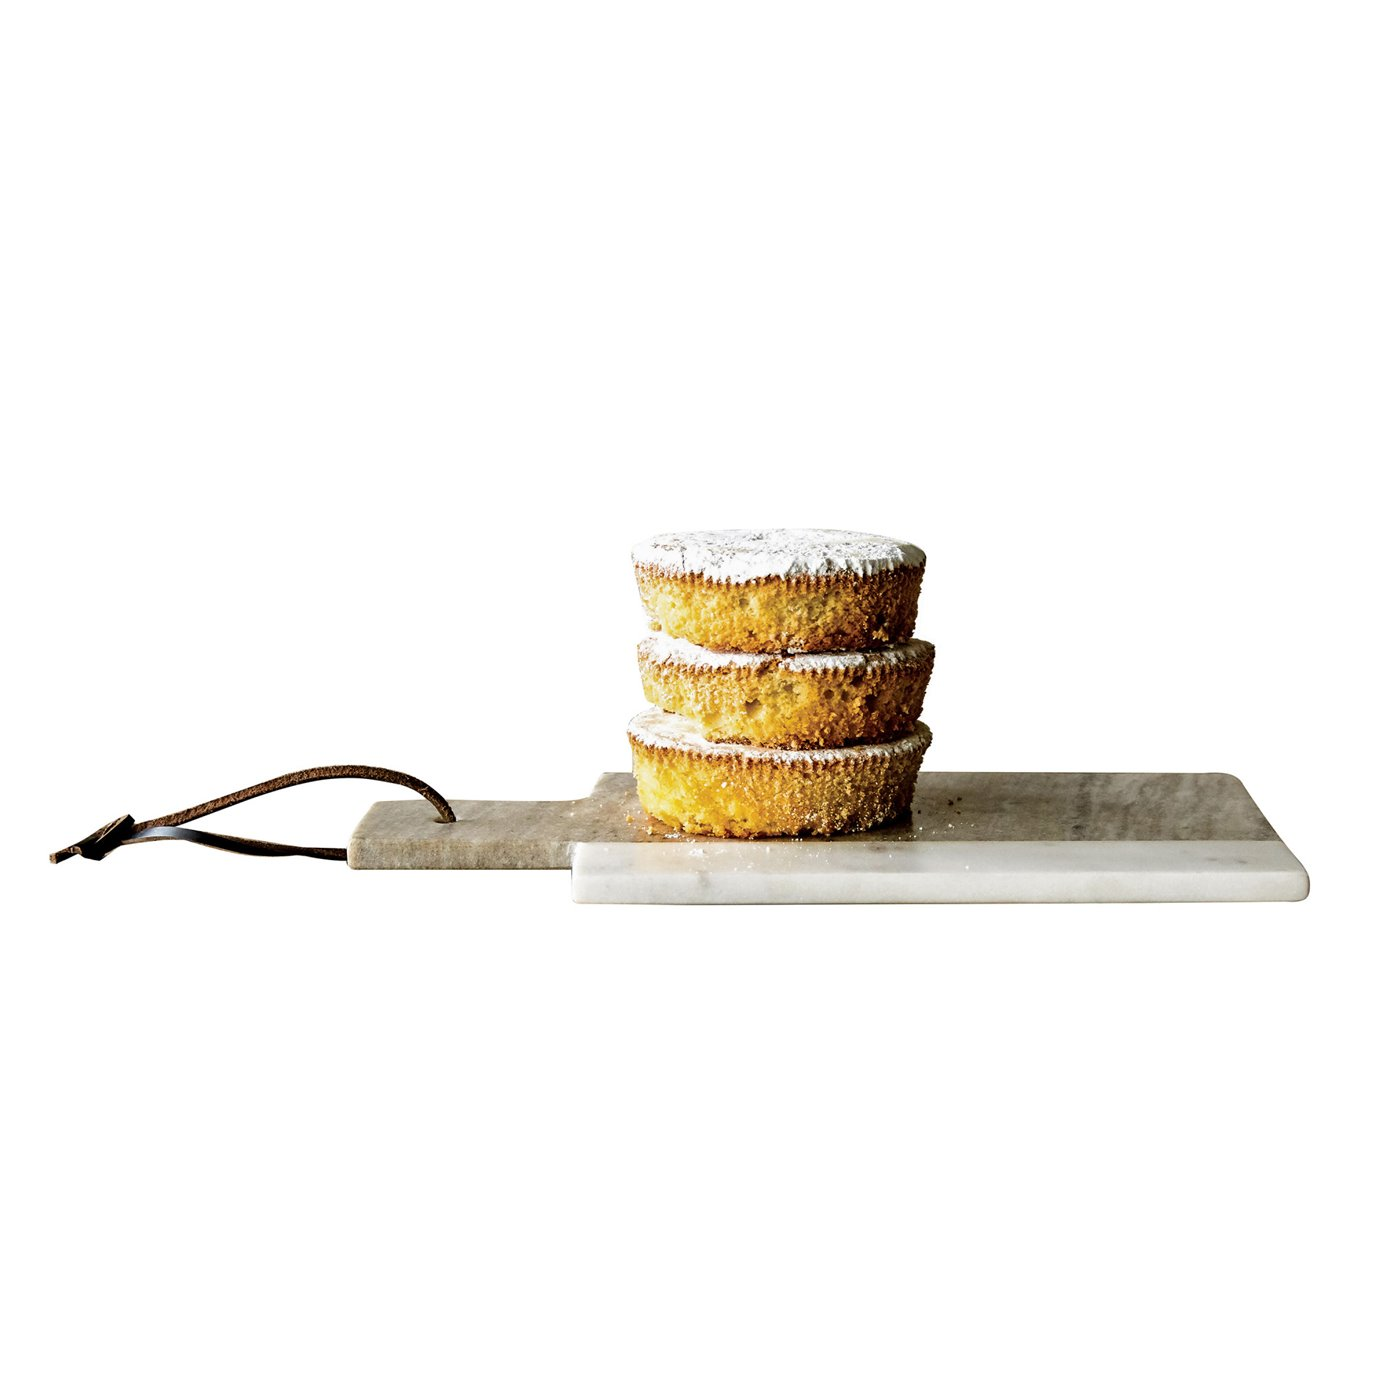 Grey & White Rectangle Marble Cheese Board with Leather Tie